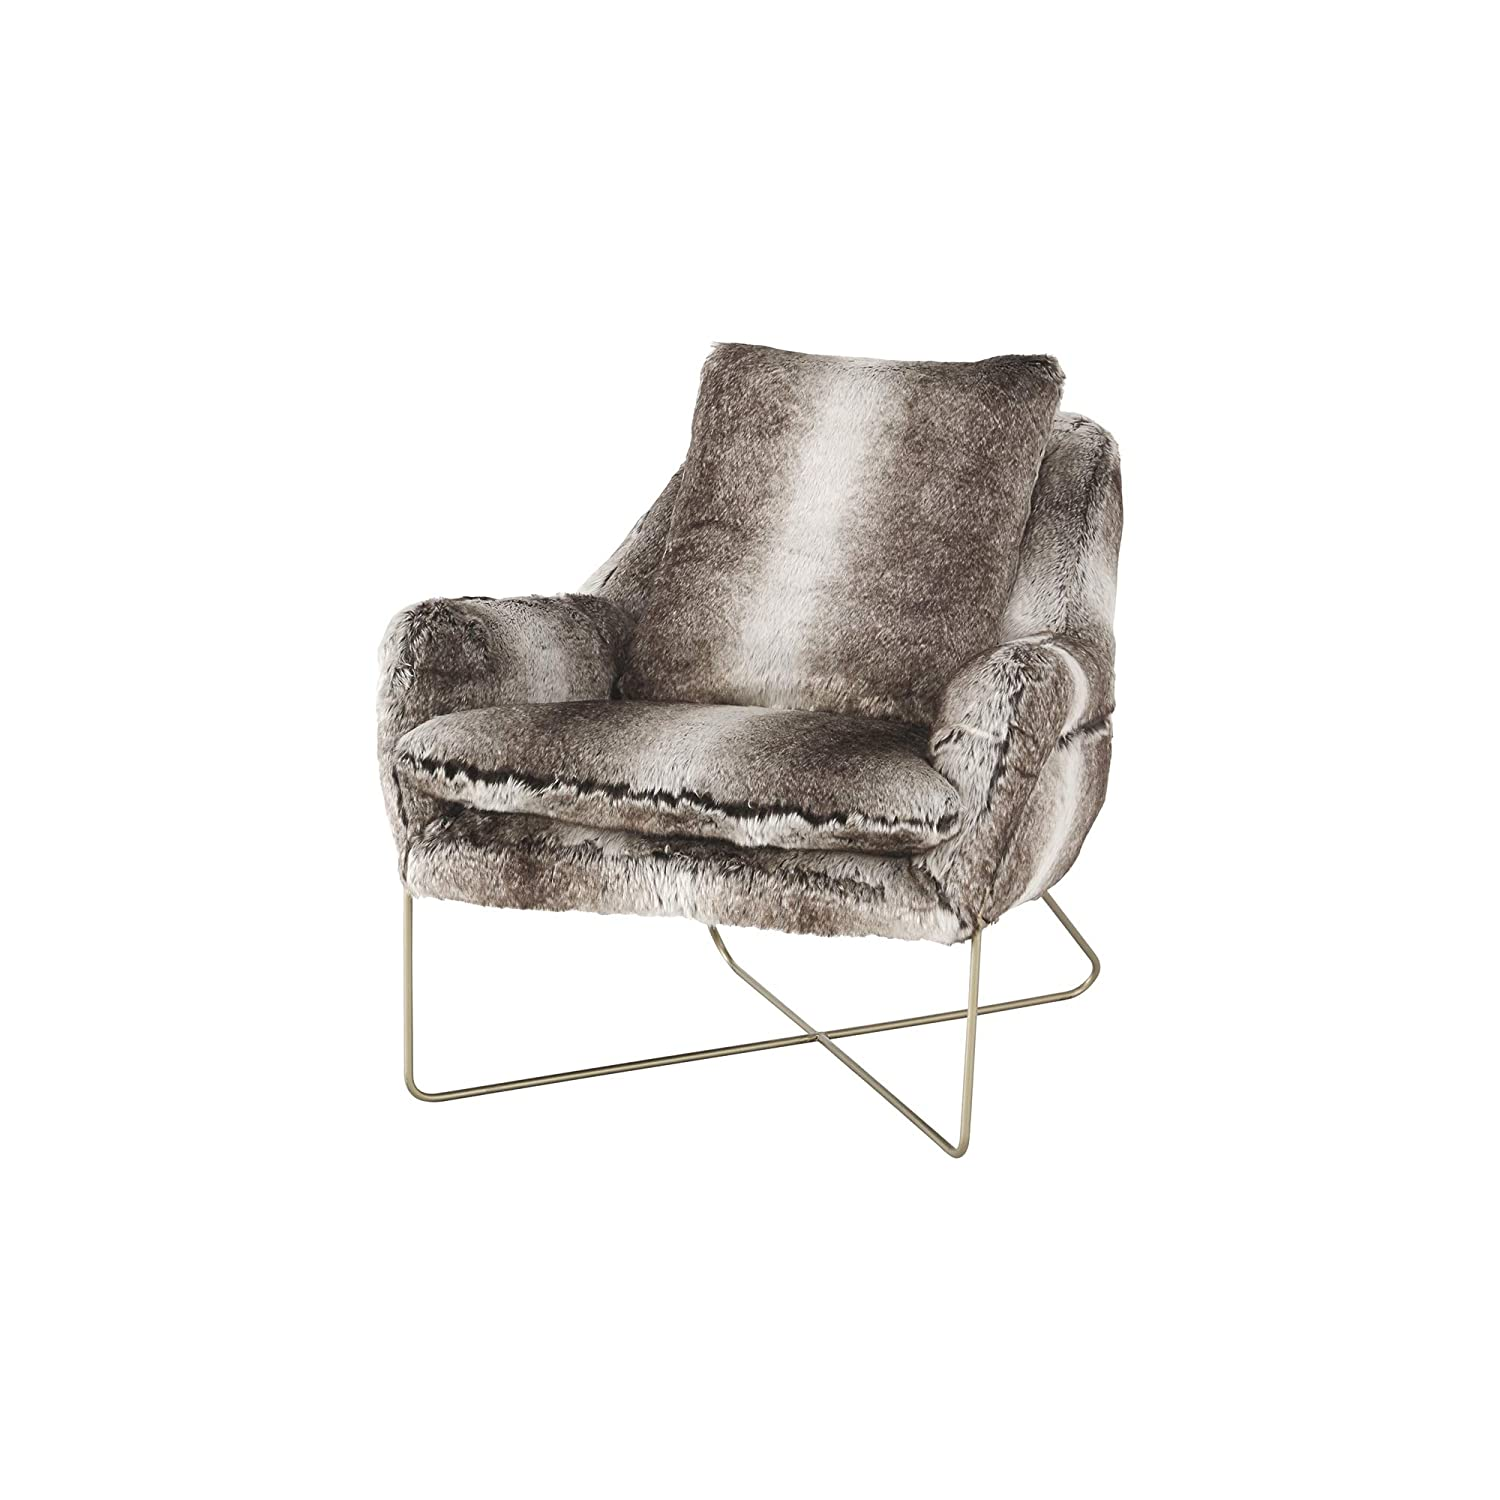 Cool Ashley Furniture Signature Design Wildau Accent Chair Mid Century Modern Faux Fur In Shades Of Gray Gold Metal Frame Gmtry Best Dining Table And Chair Ideas Images Gmtryco